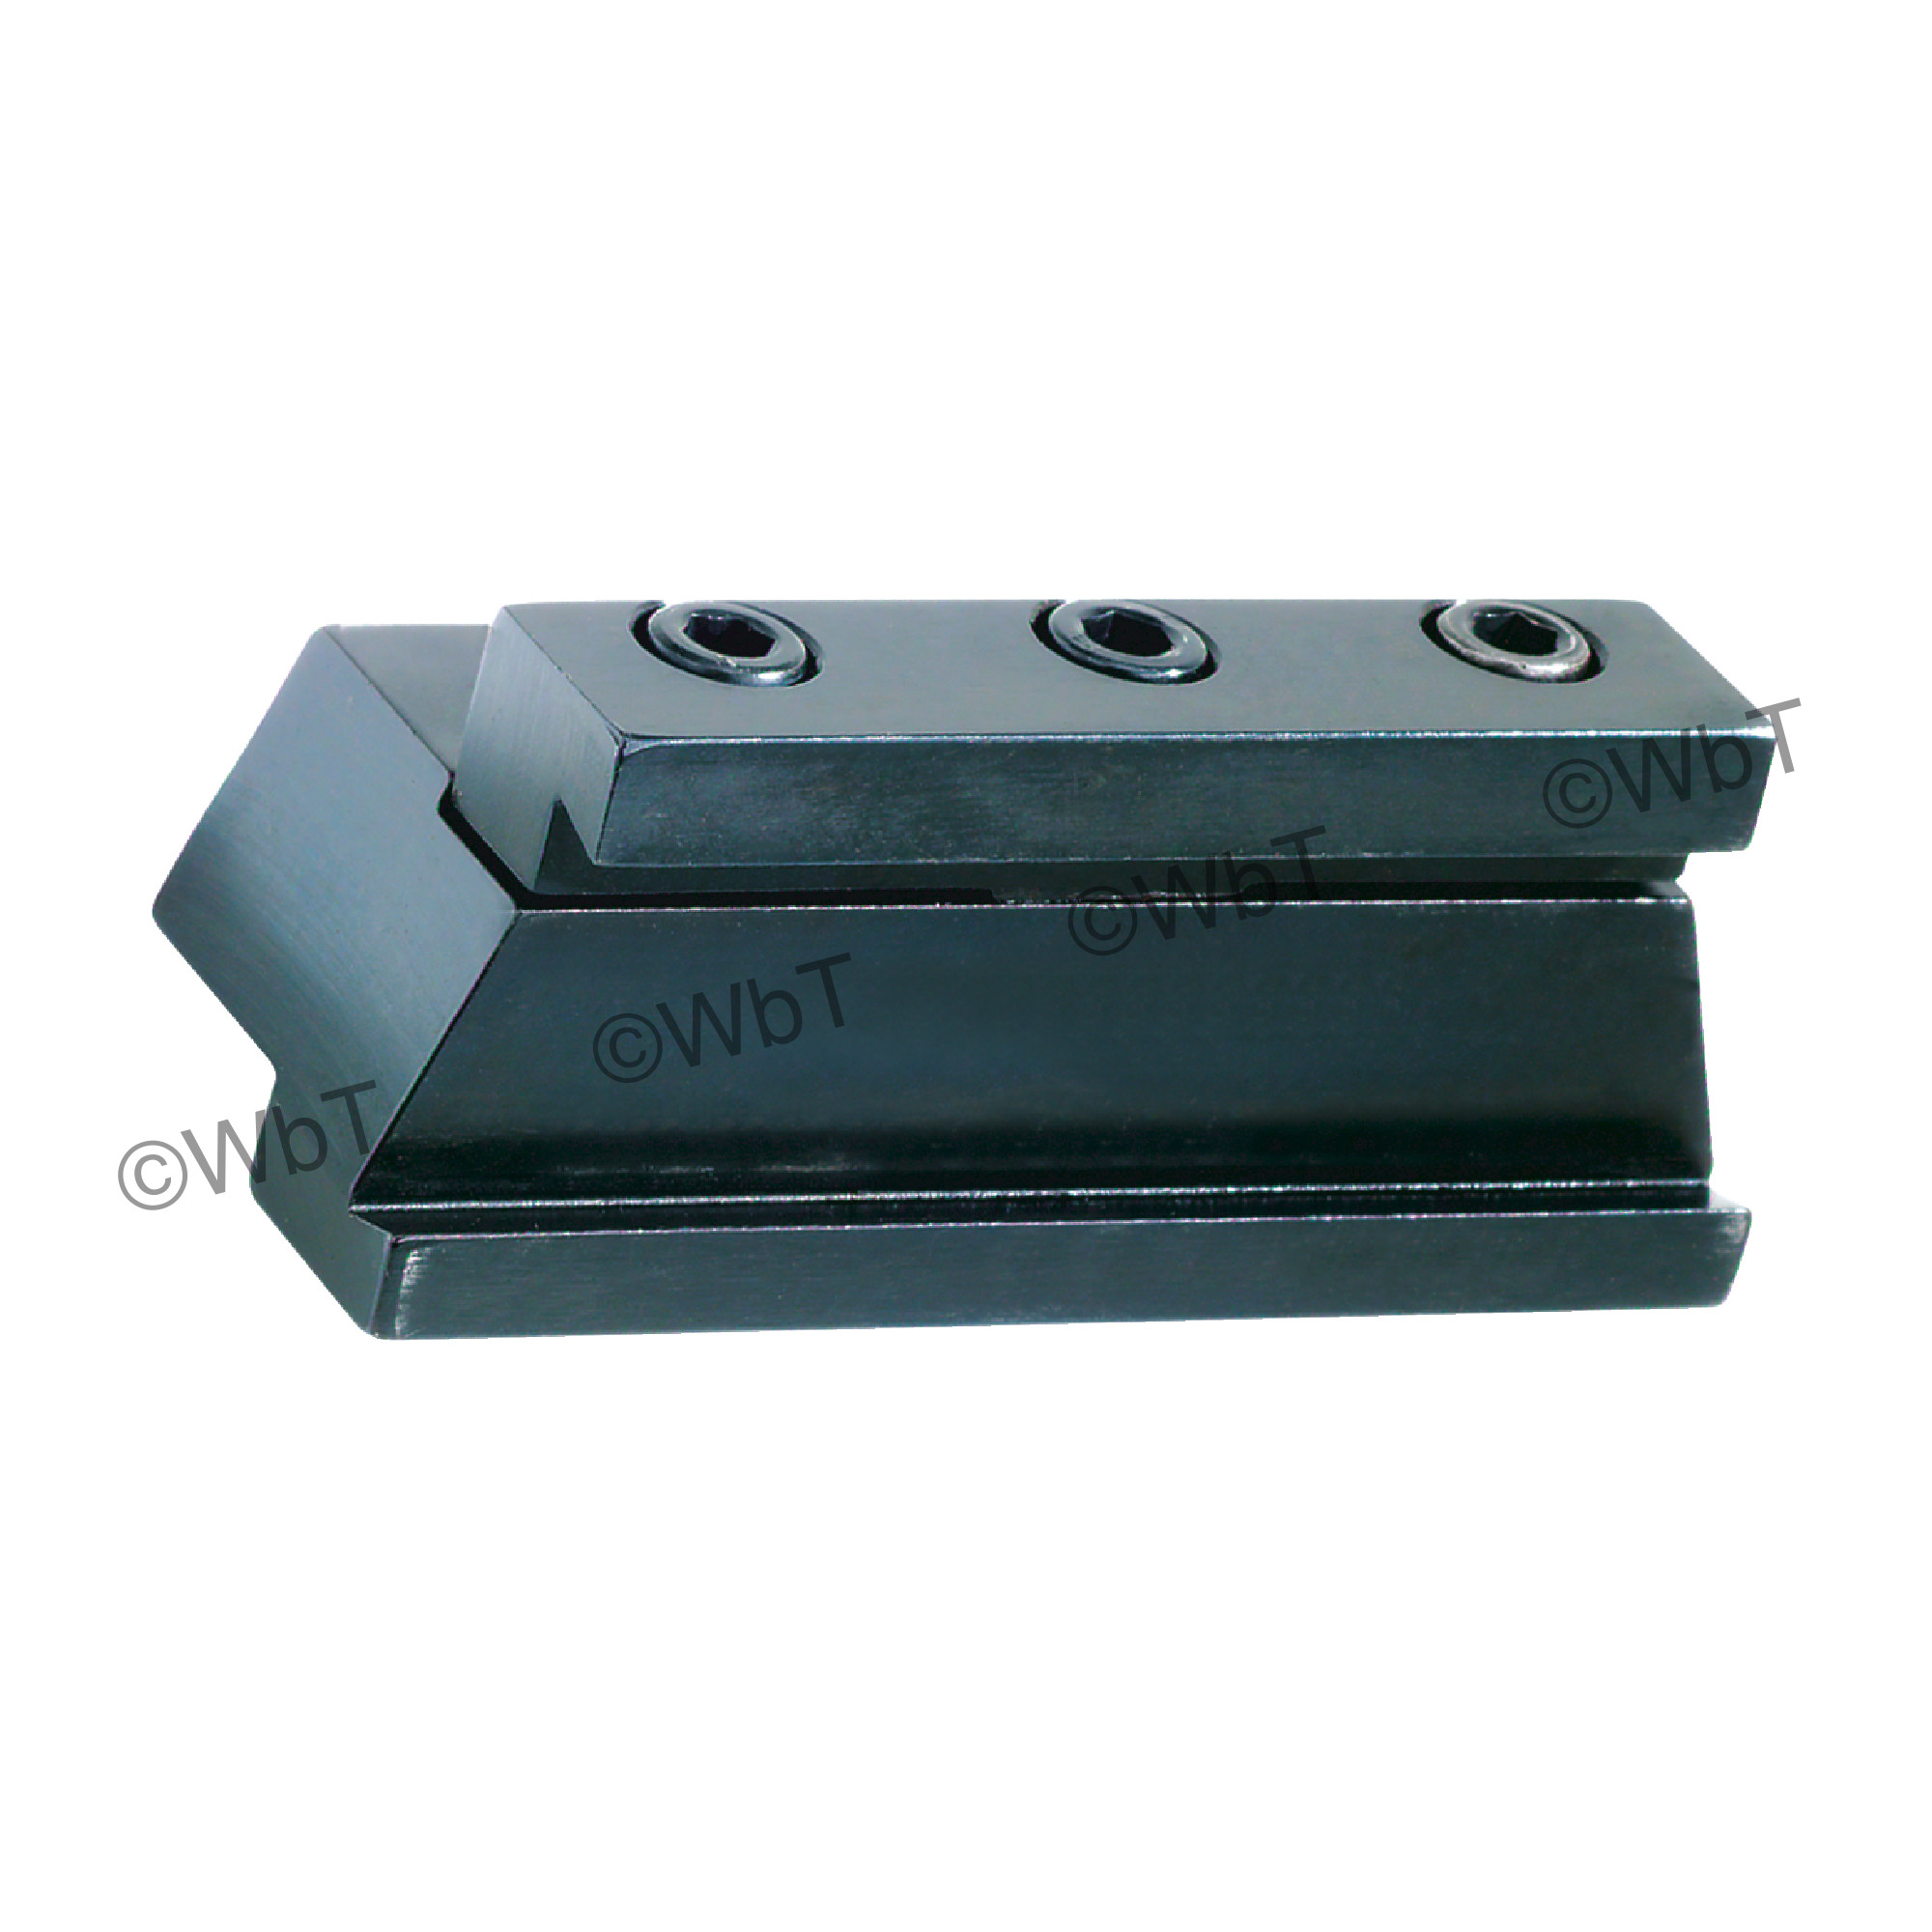 """TTC PRODUCTION - SLTBN 16-5 Blade Block / 5/8"""" X 5/8"""" Shank / For 1.024"""" (26mm) Height Blades"""